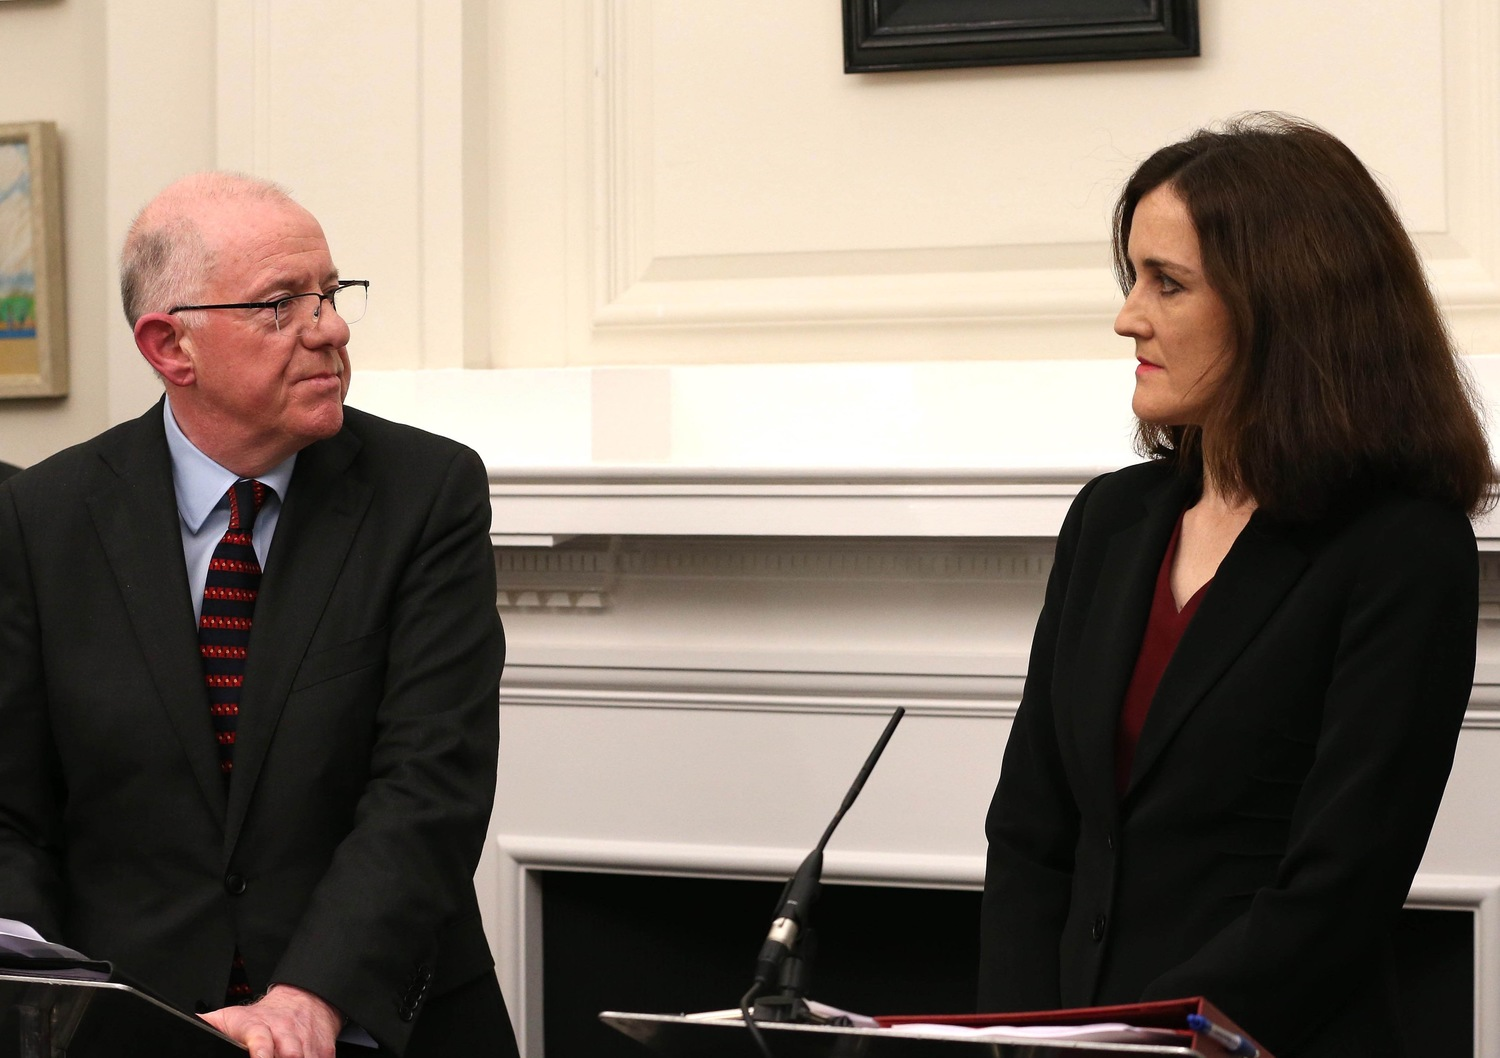 'Your move': Irish Government Foreign Affairs Minister Charlie Flanagan and UK Secretary of State Theresa Villiers